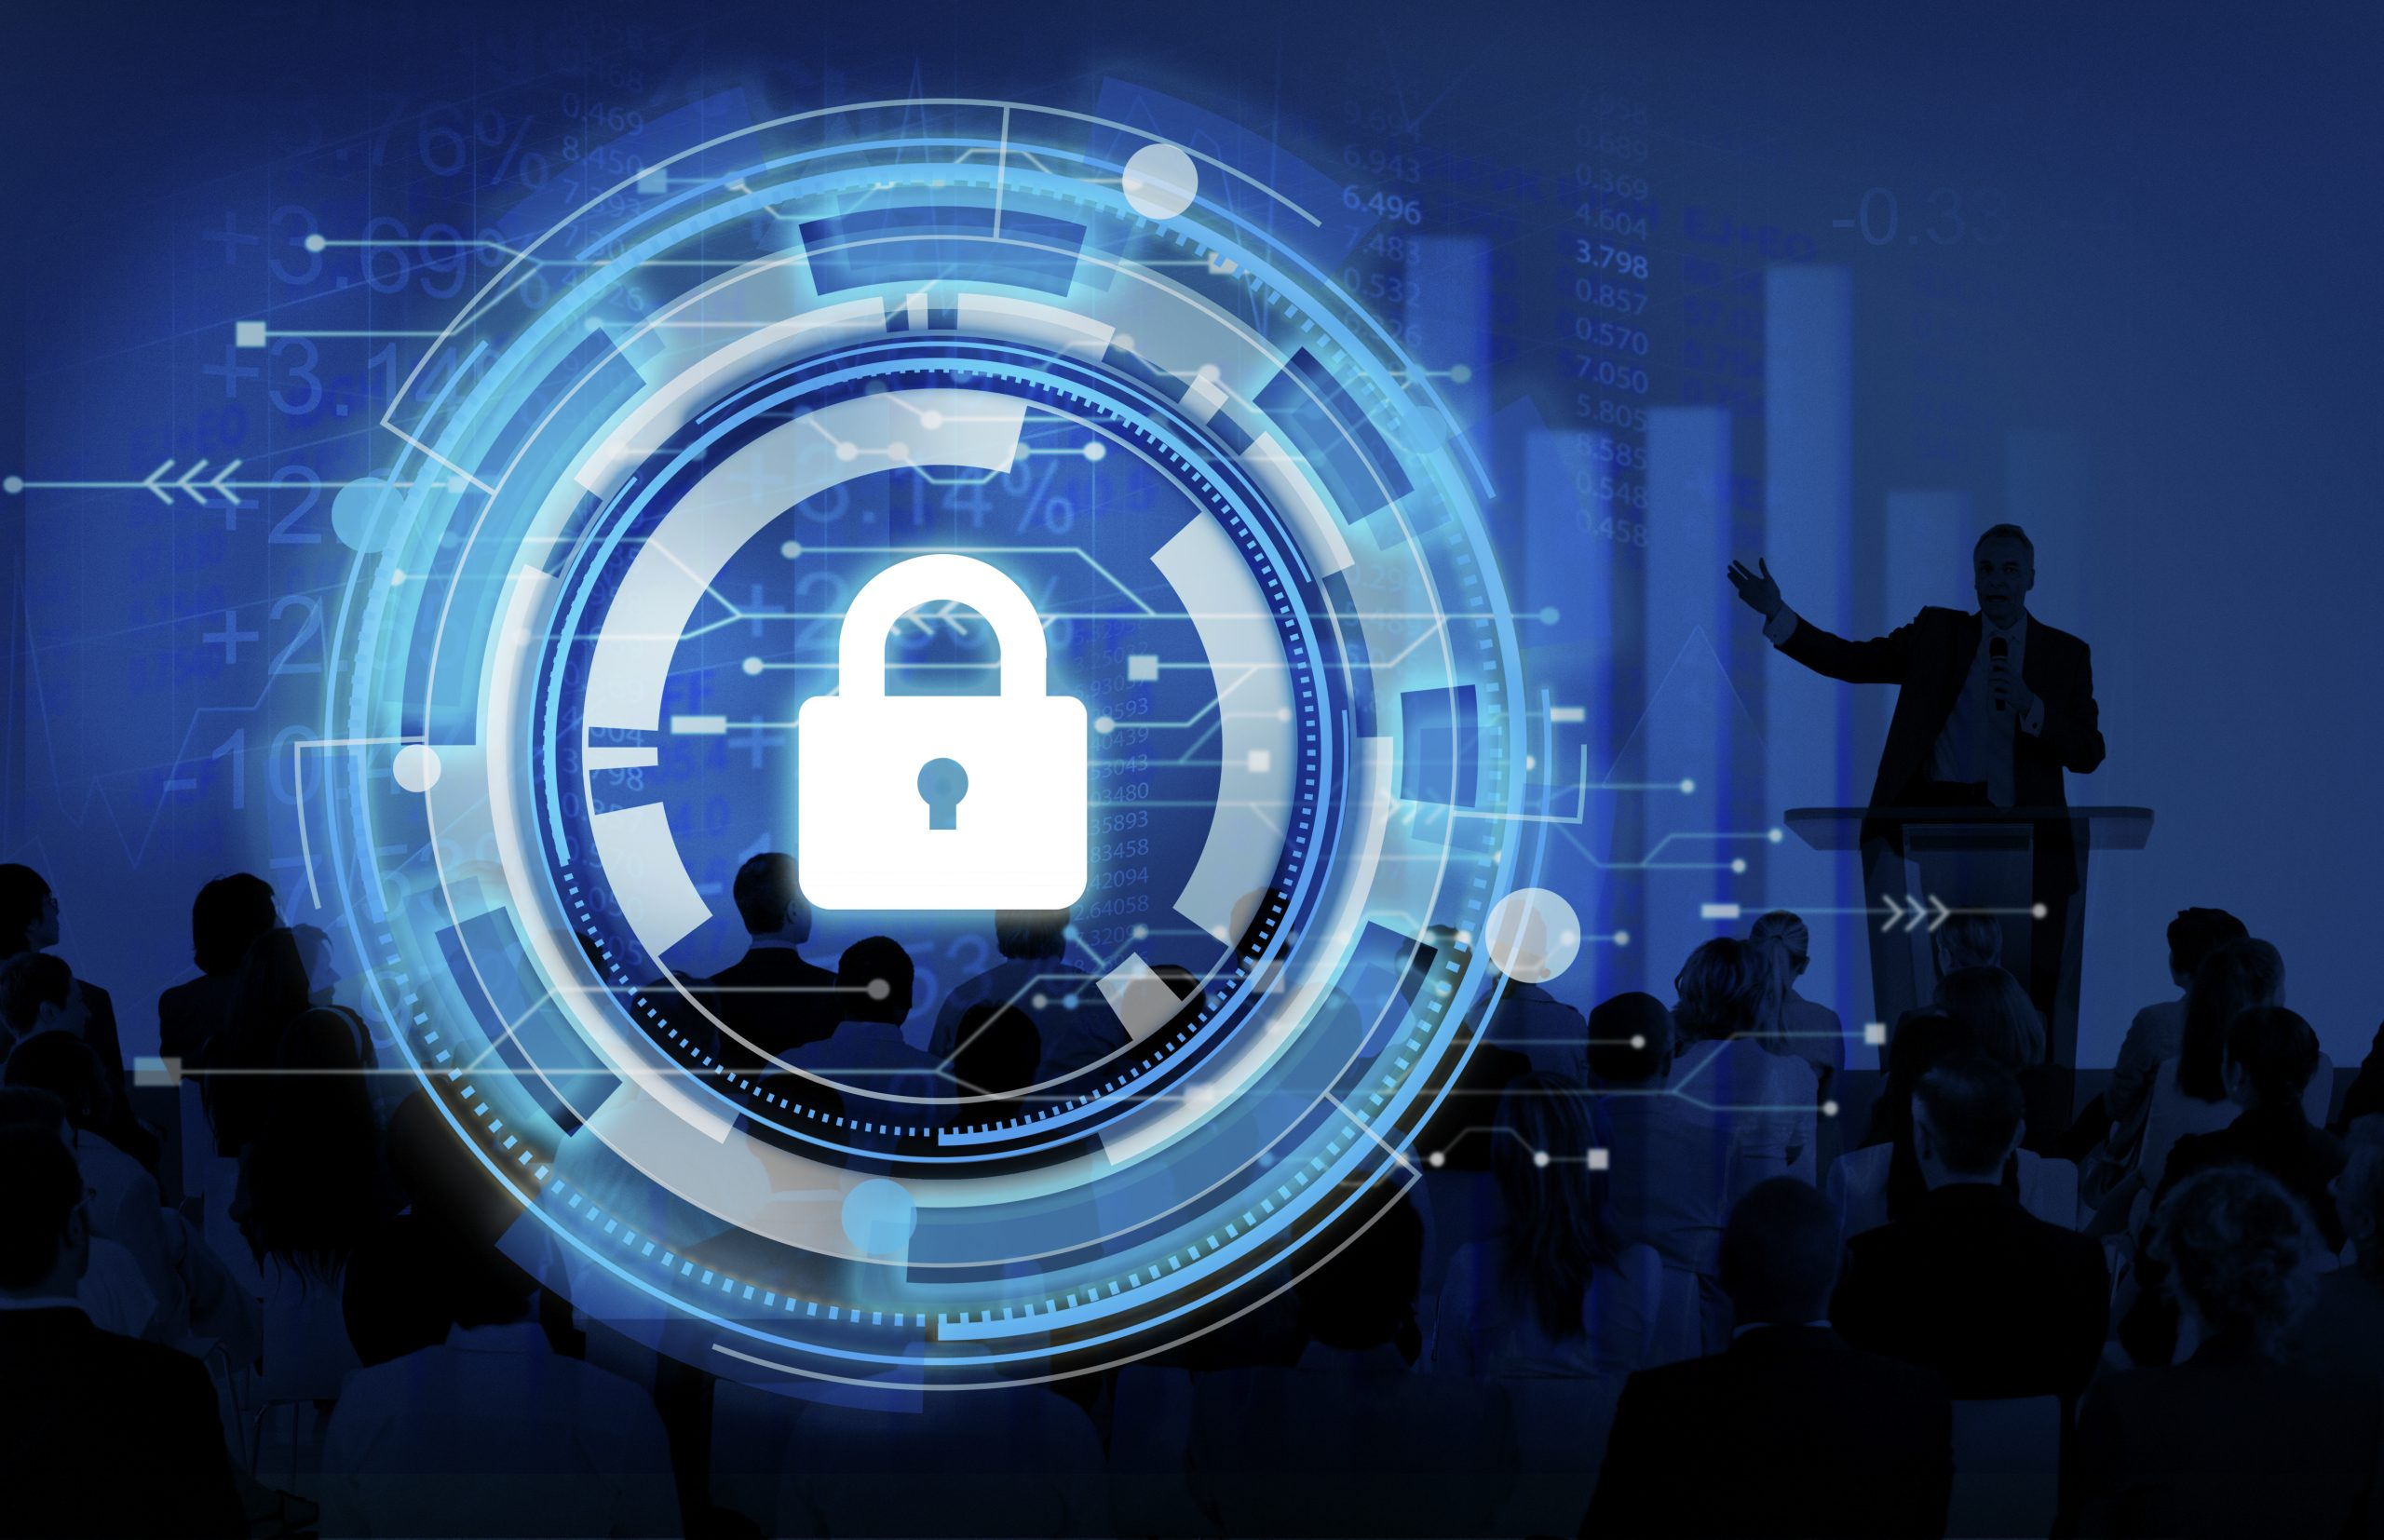 Experian releases new version of its integrated digital identity and fraud risk platform to help businesses quickly respond to today's emerging fraud threats